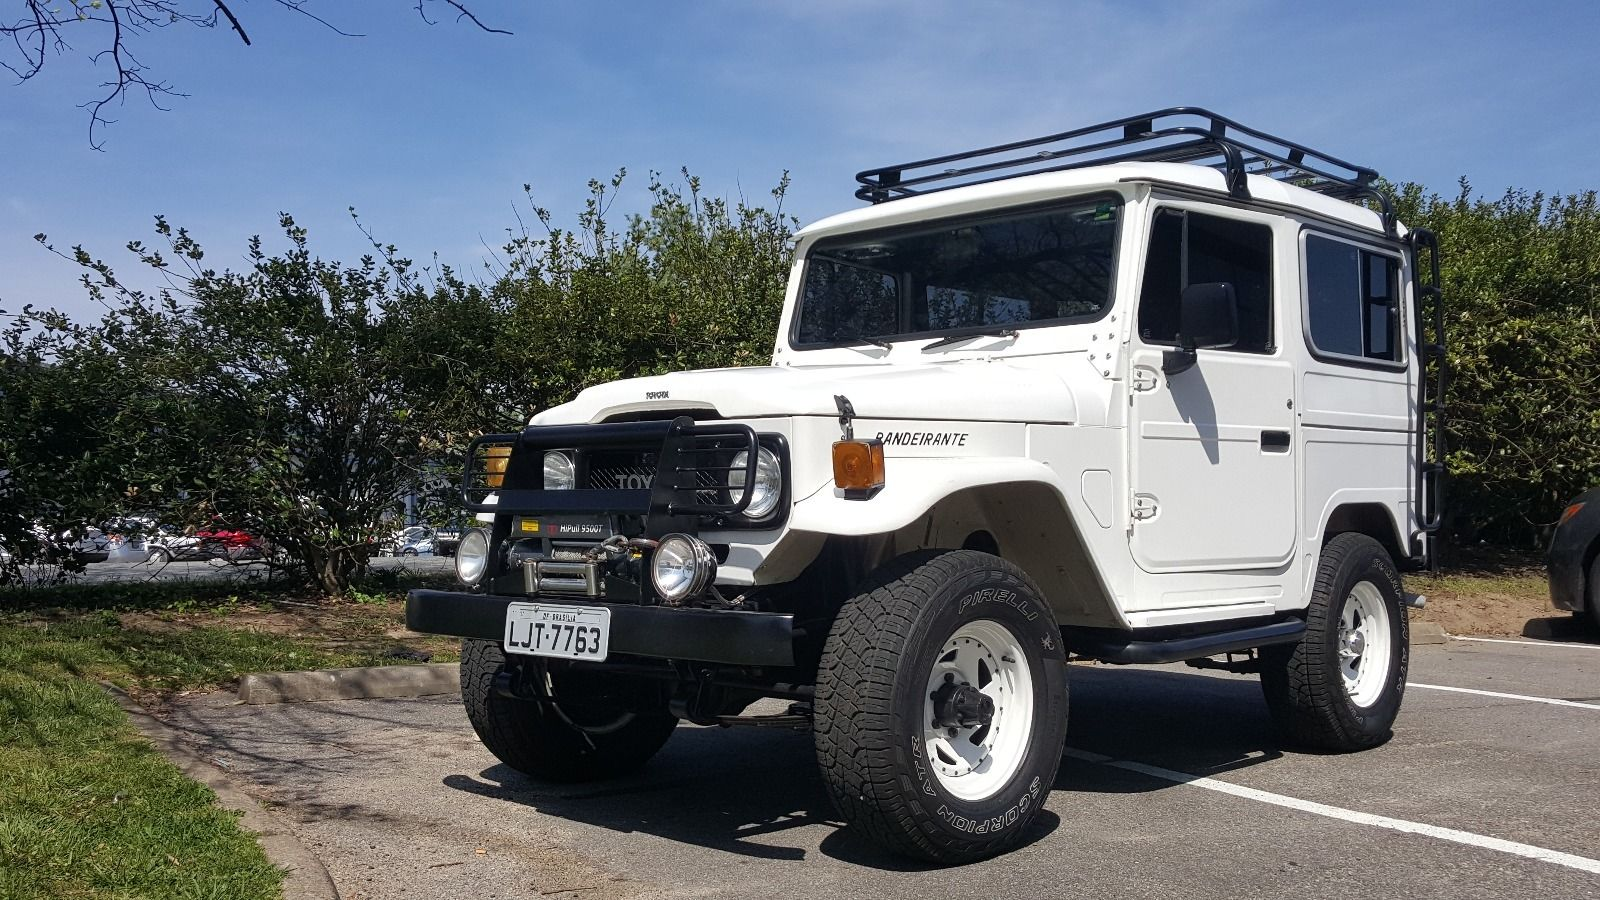 1989 toyota land cruiser fj40 bandeirante for sale. Black Bedroom Furniture Sets. Home Design Ideas